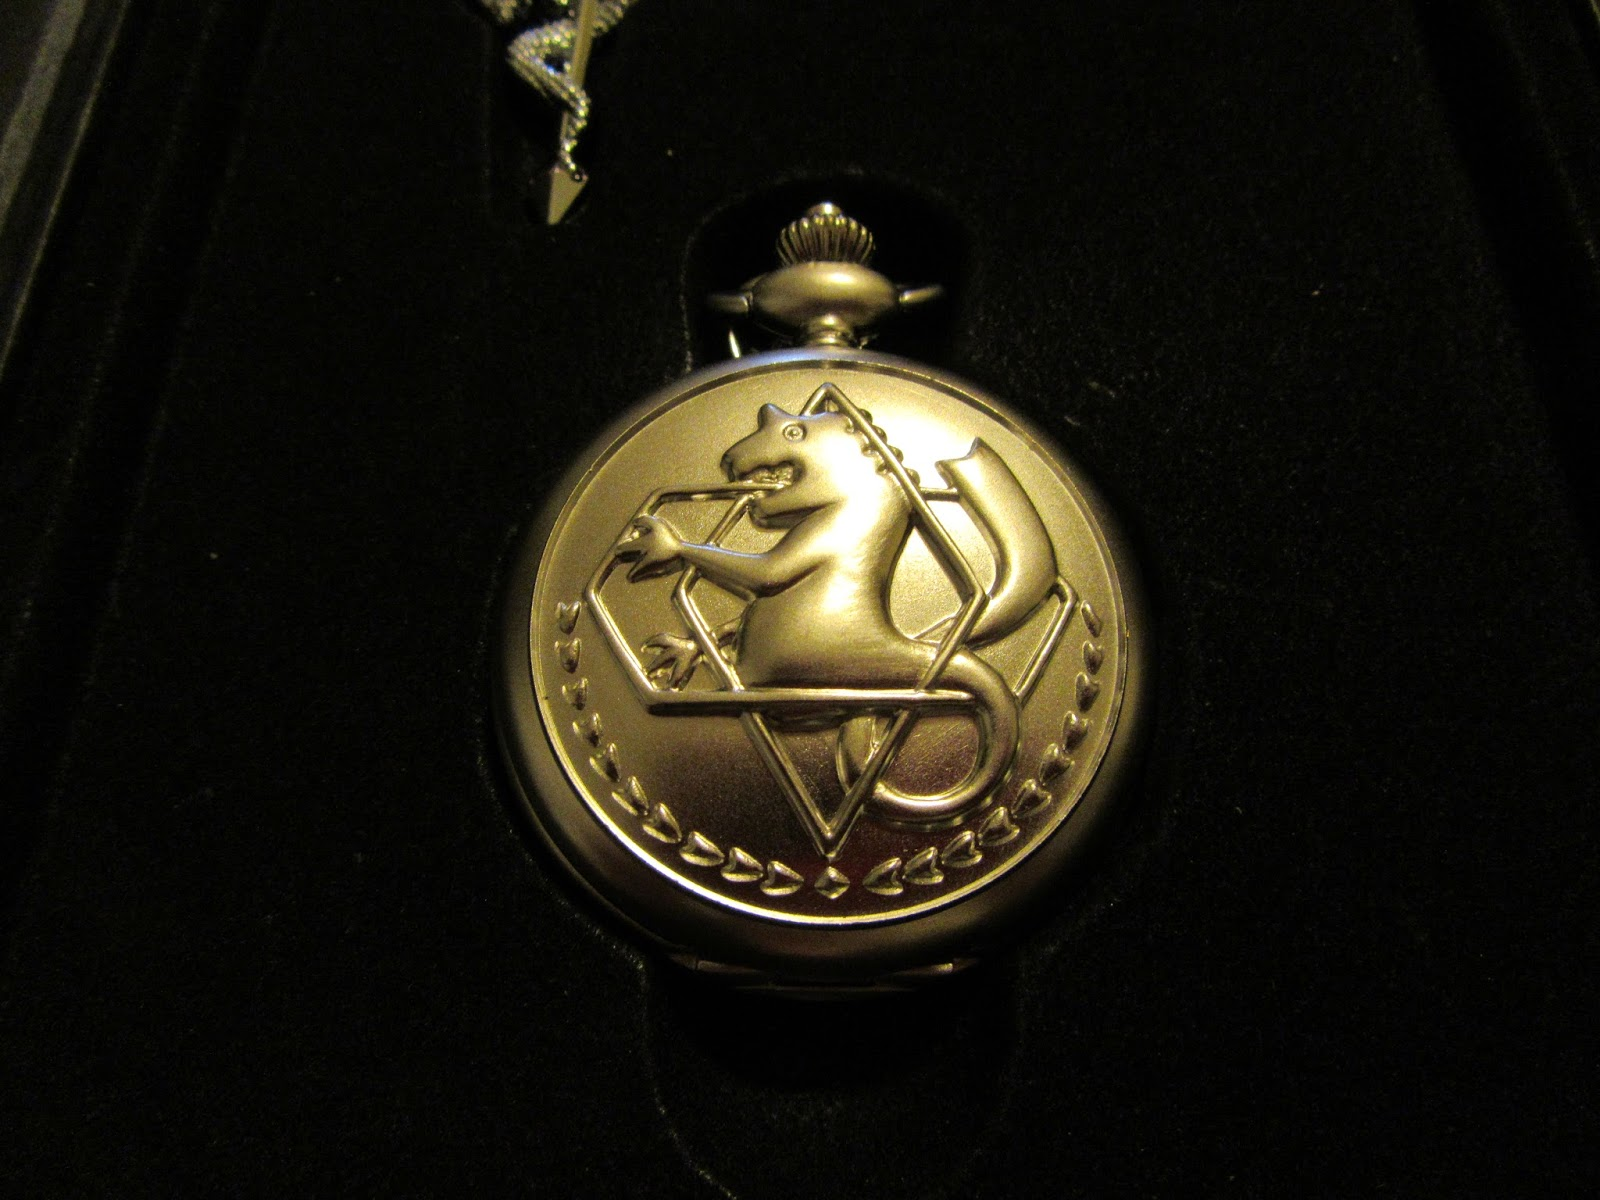 fullmetal alchemist anime pocket necklace ring